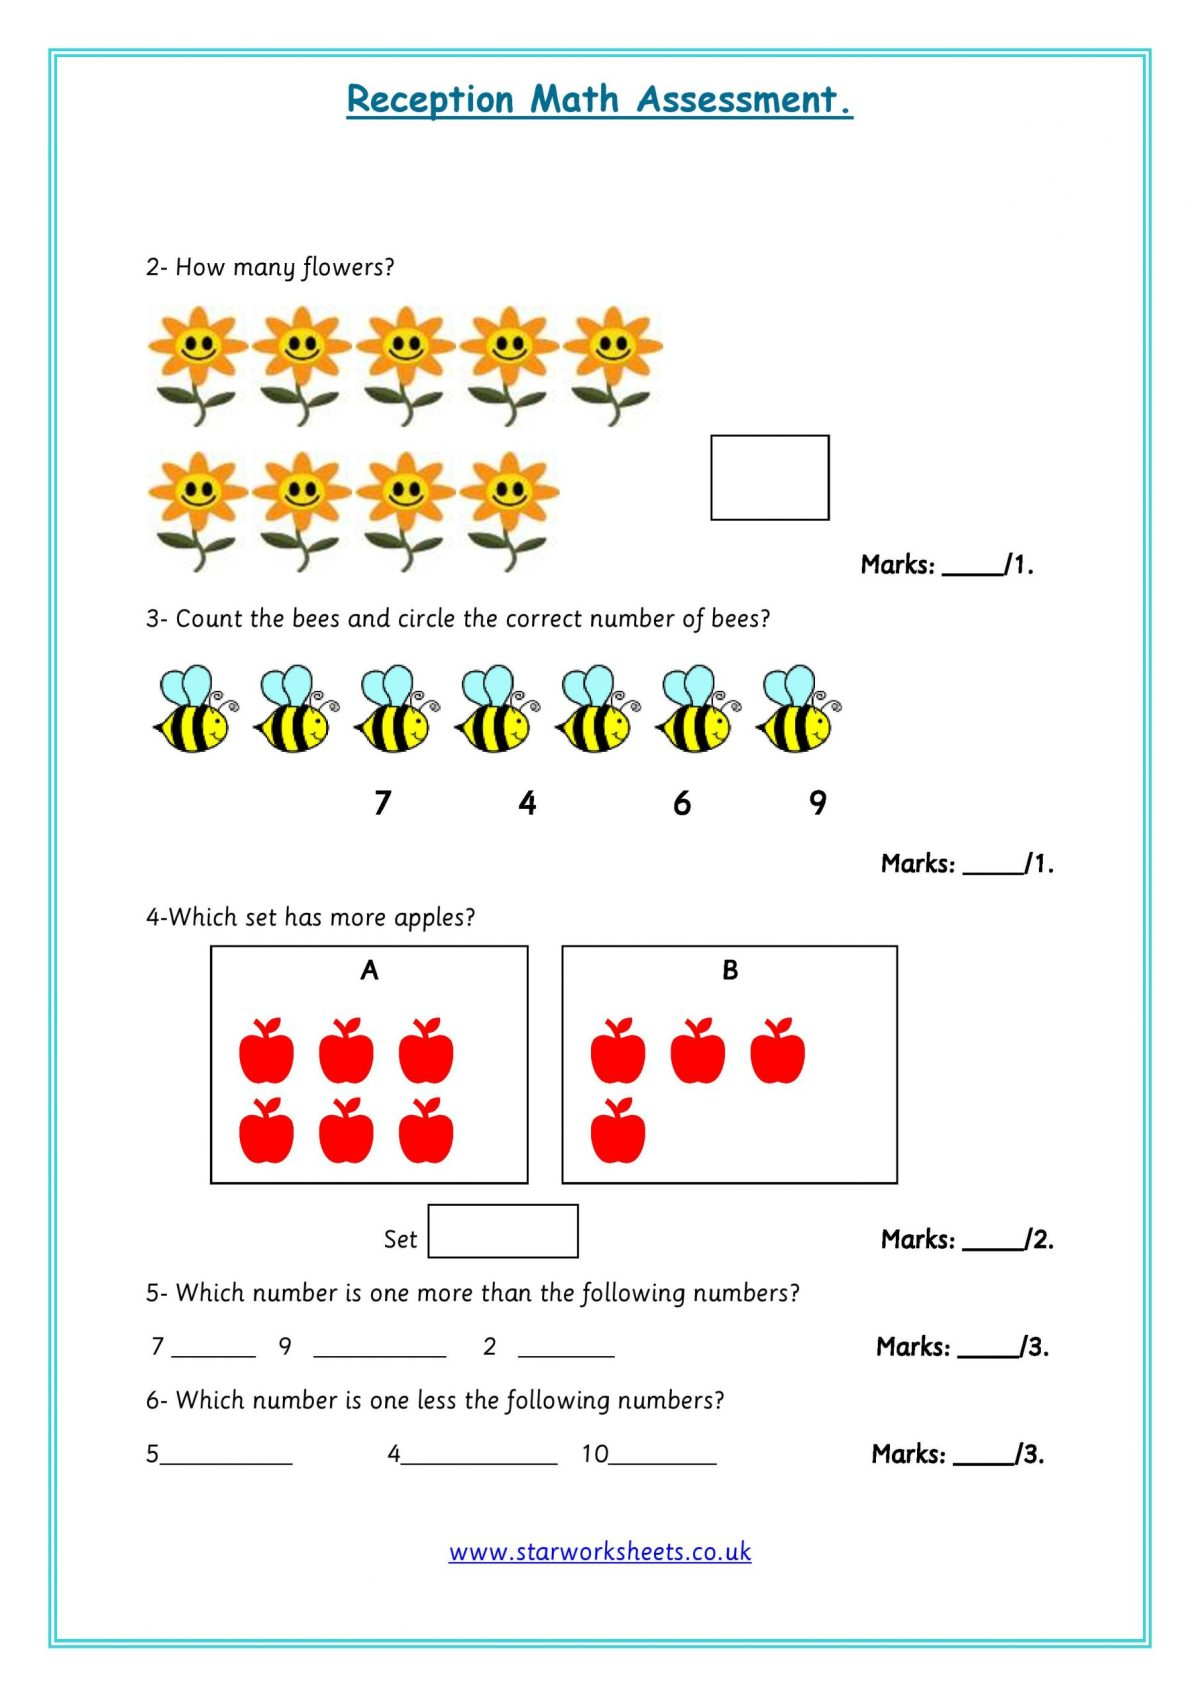 reception-assessment-worksheets